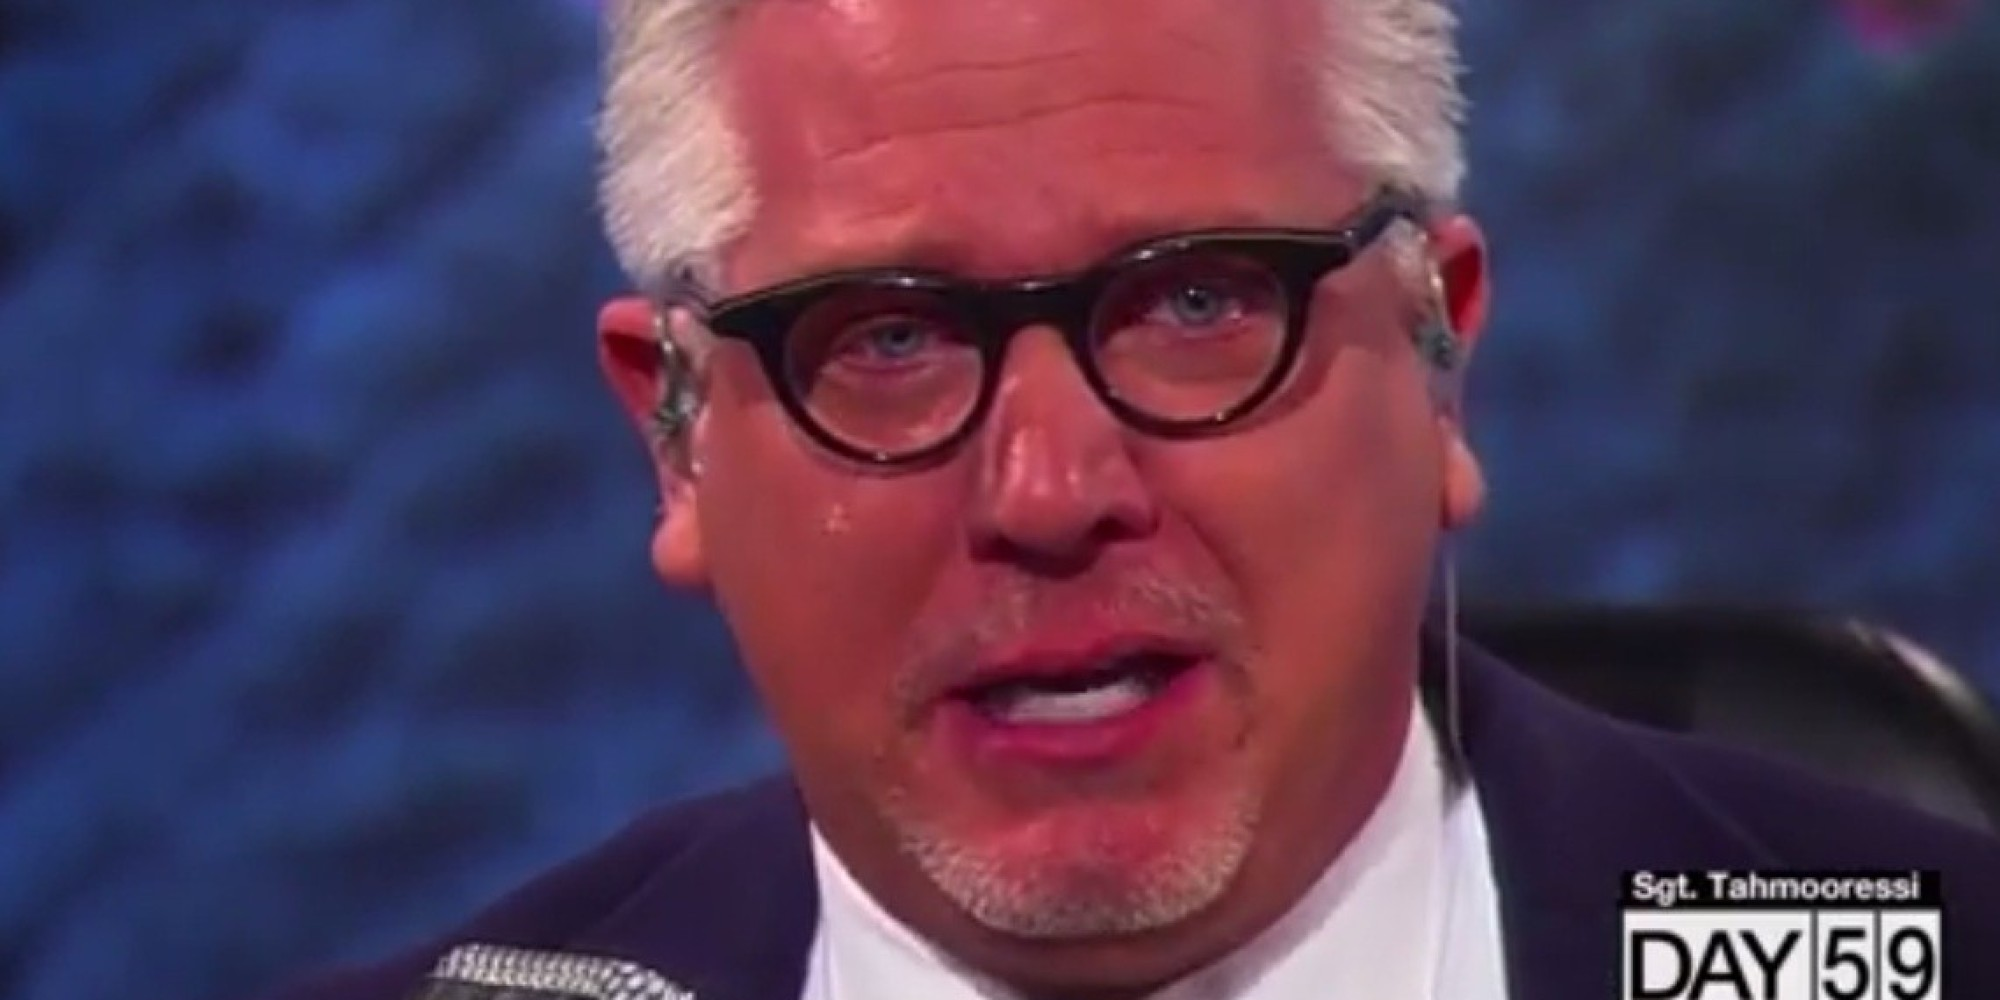 Glenn beck s father raped repeatedly talk show host announces after